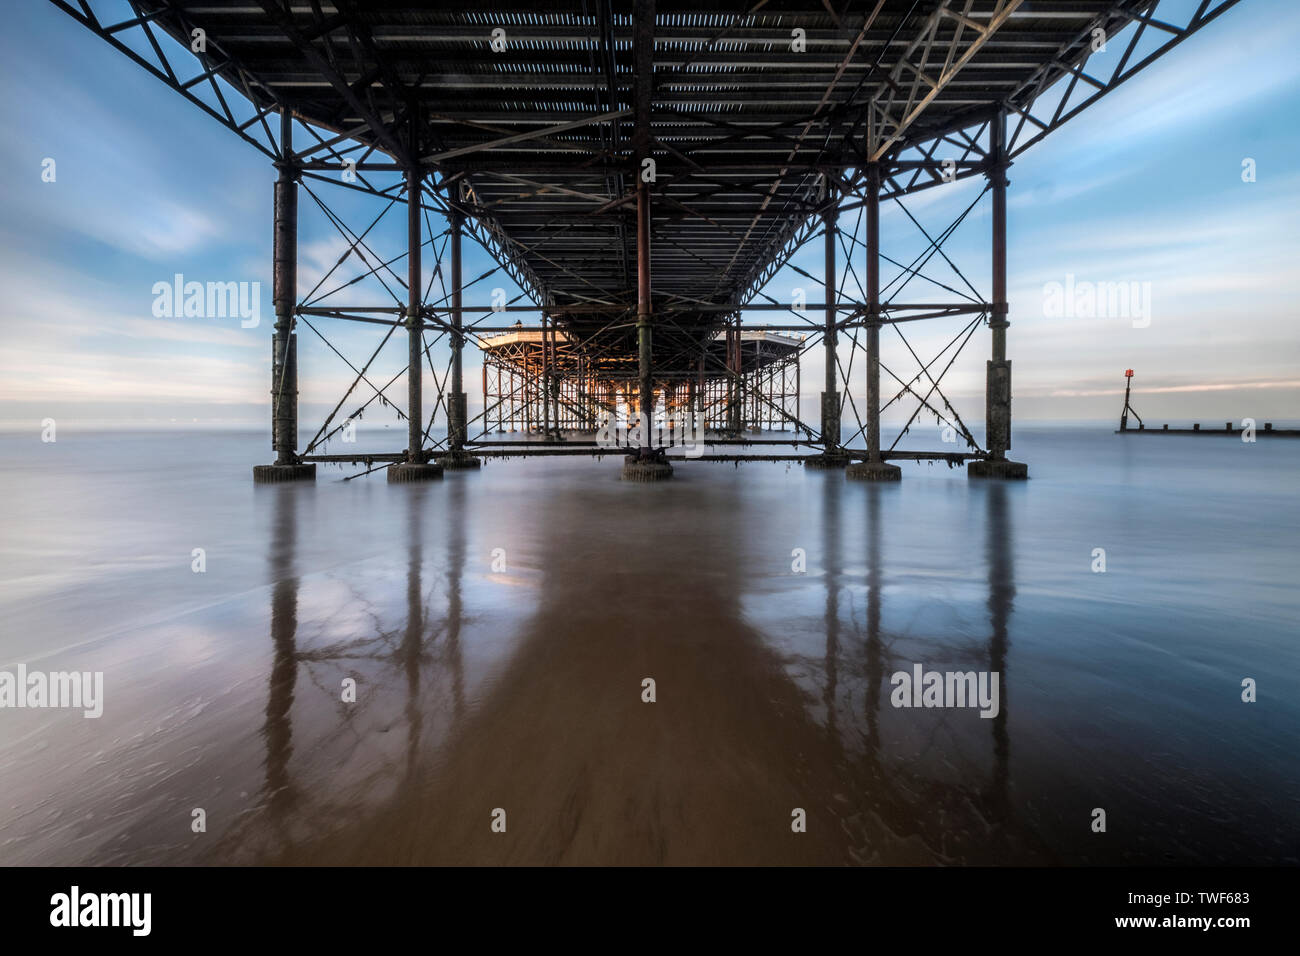 Looking out to see under the pier at Cromer. - Stock Image